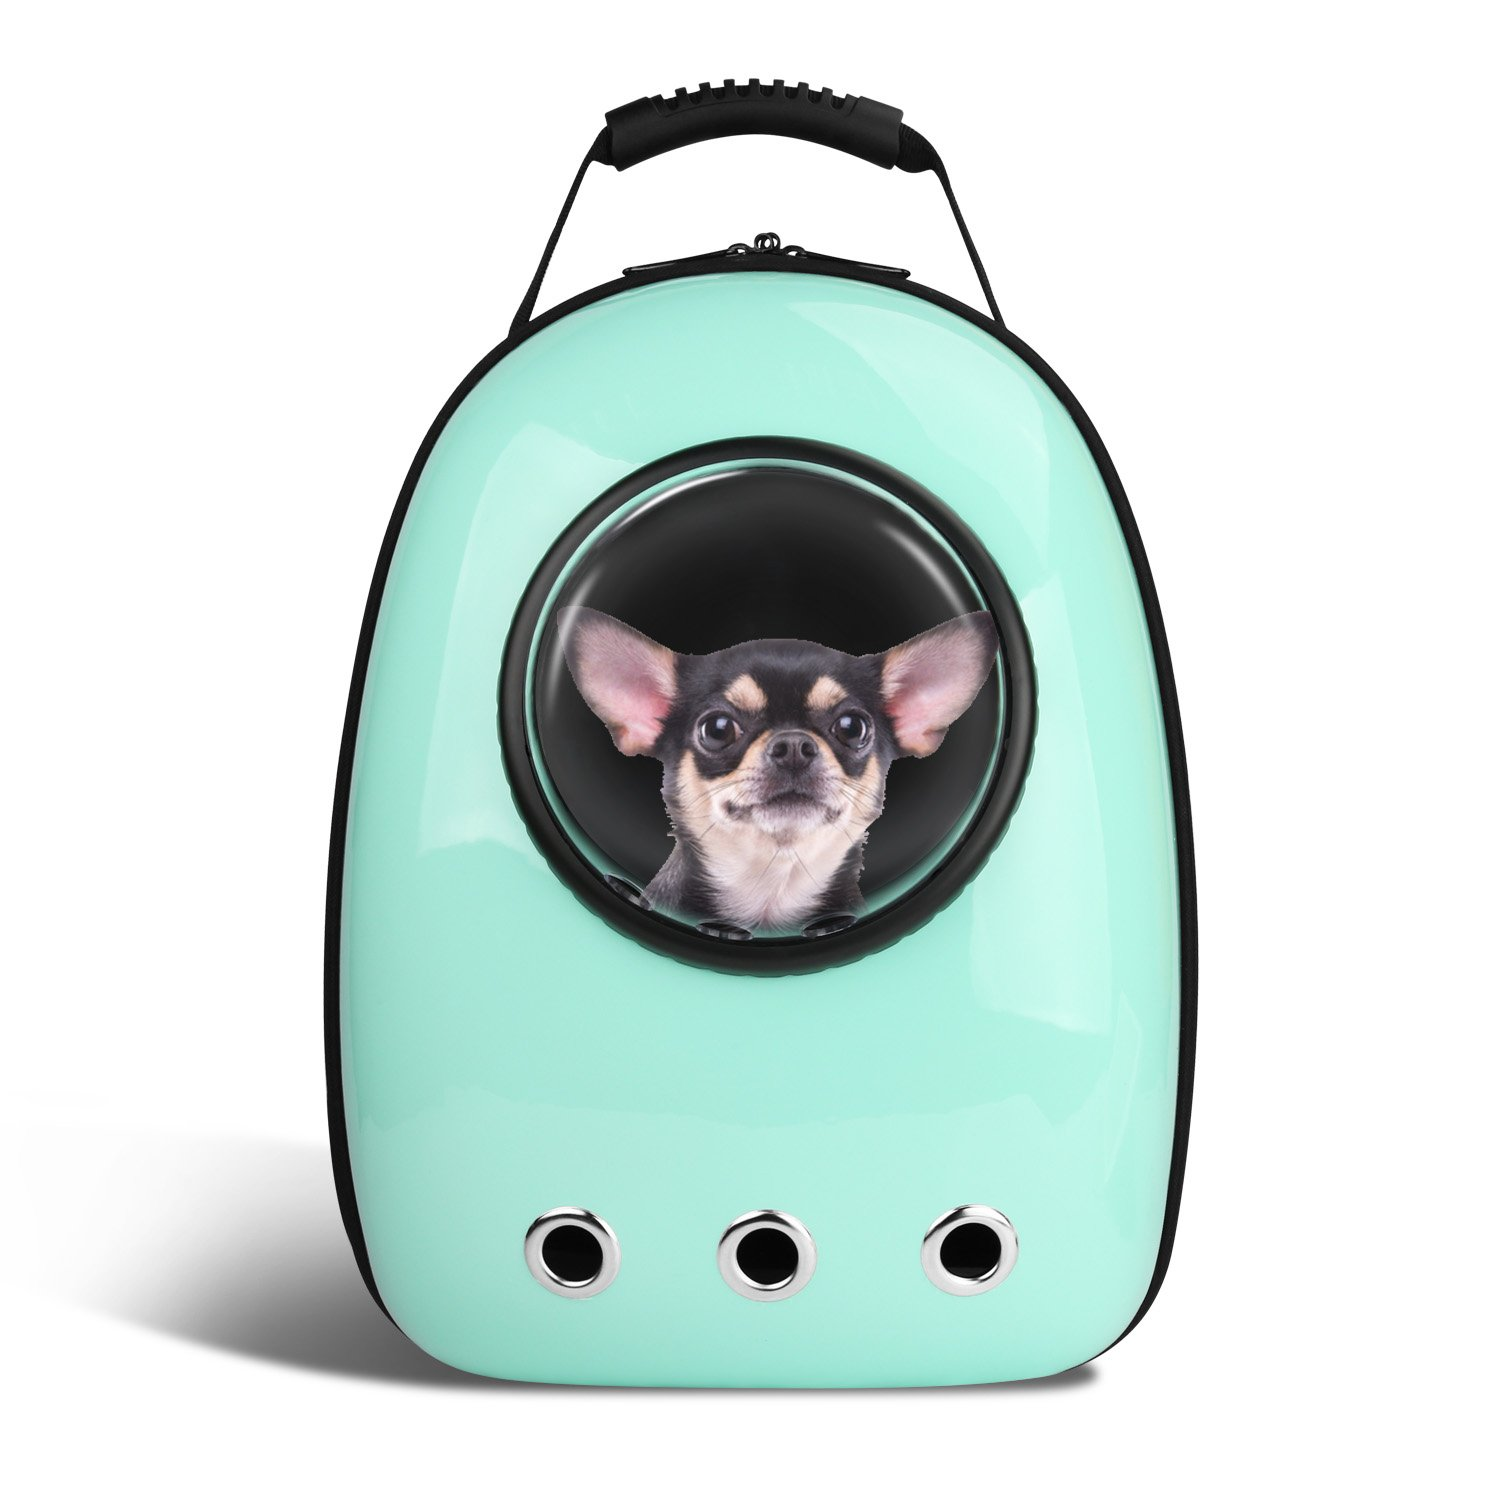 Anzone Pet Portable Carrier Space Capsule Backpack, Pet Bubble Traveler Knapsack Multiple Air Vents Waterproof Lightweight Handbag for Cats Small Dogs & Petite Animals-Cyan,30L